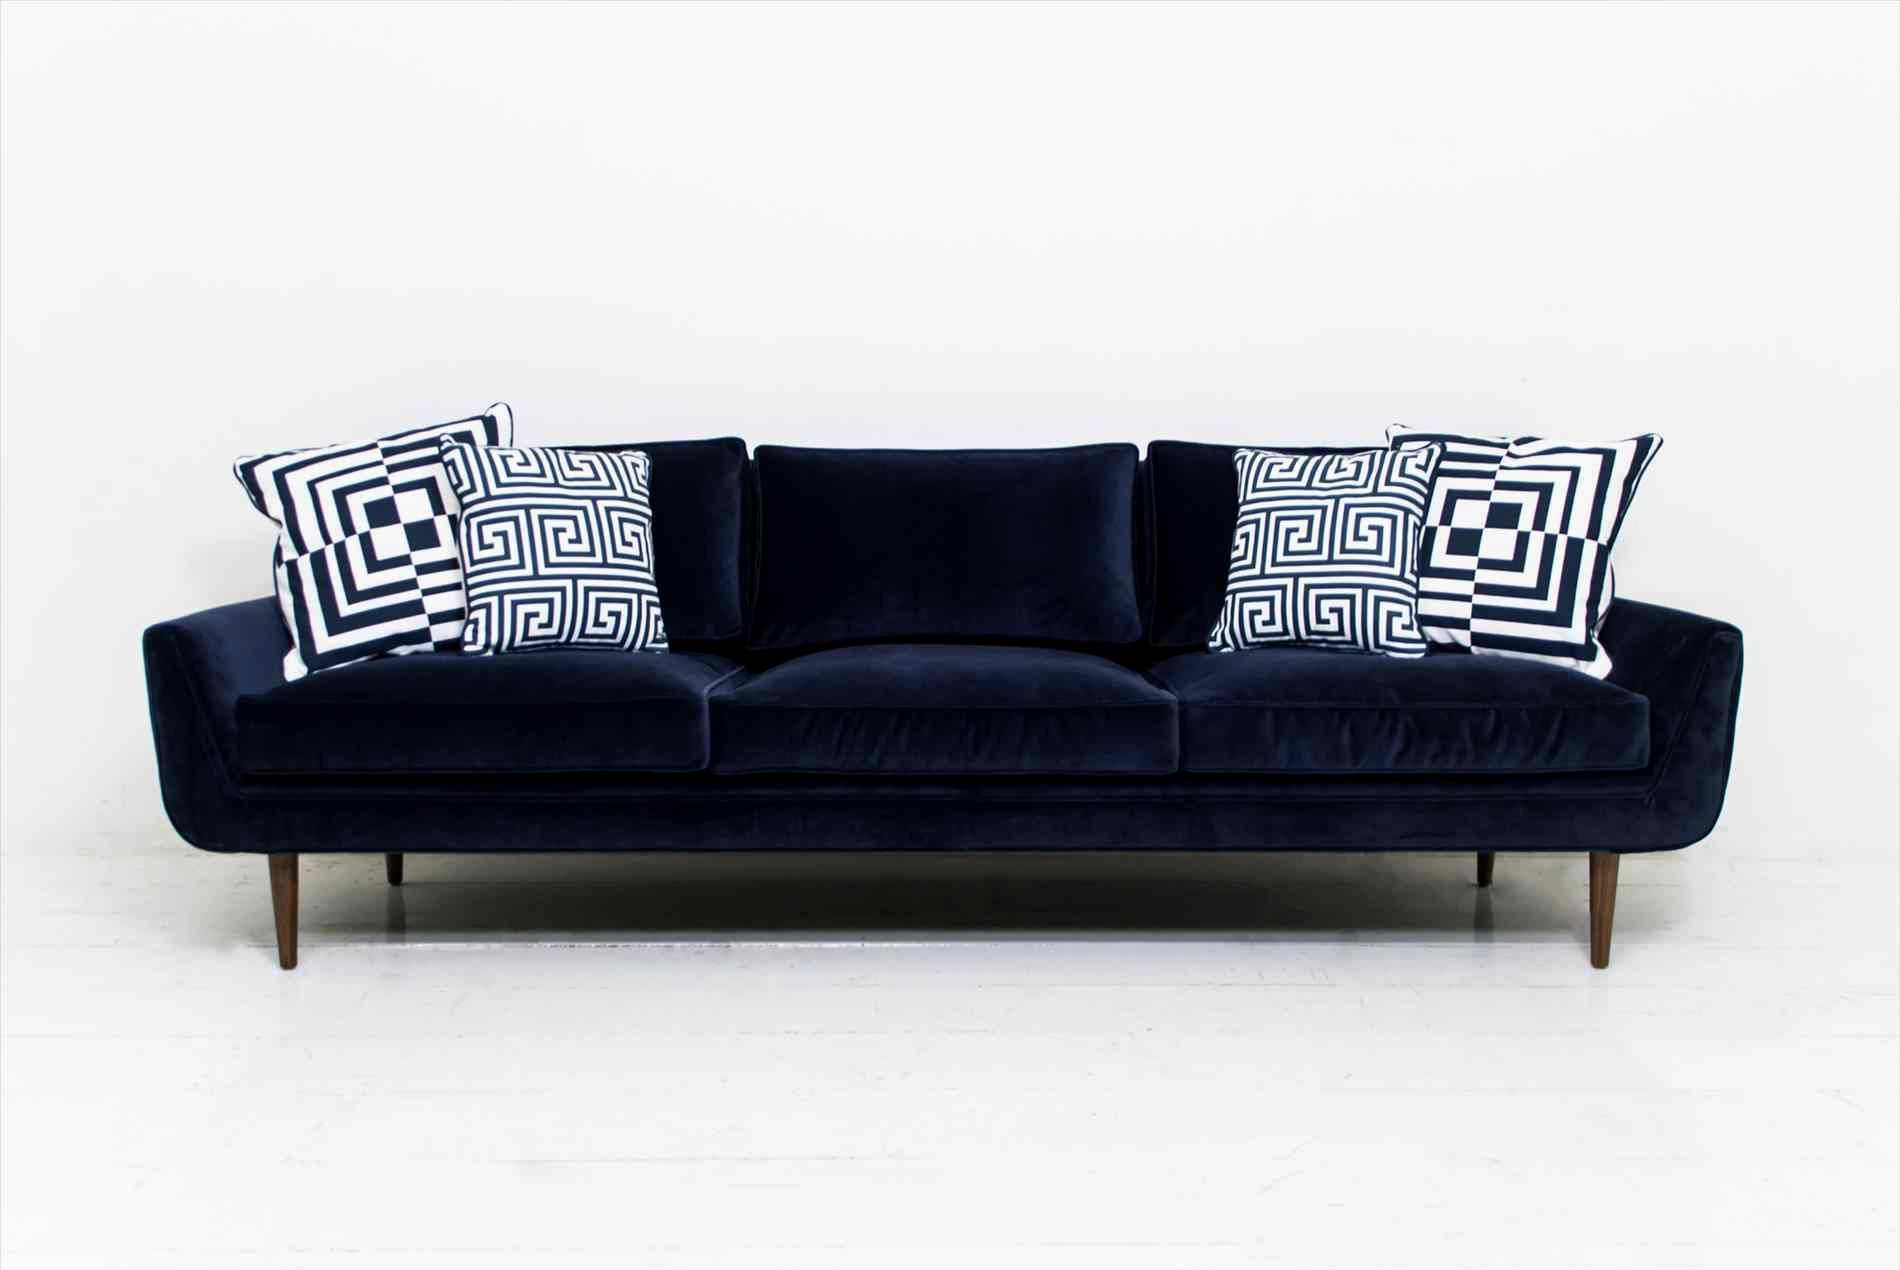 best of chesterfield sofa leather concept-Lovely Chesterfield sofa Leather Concept